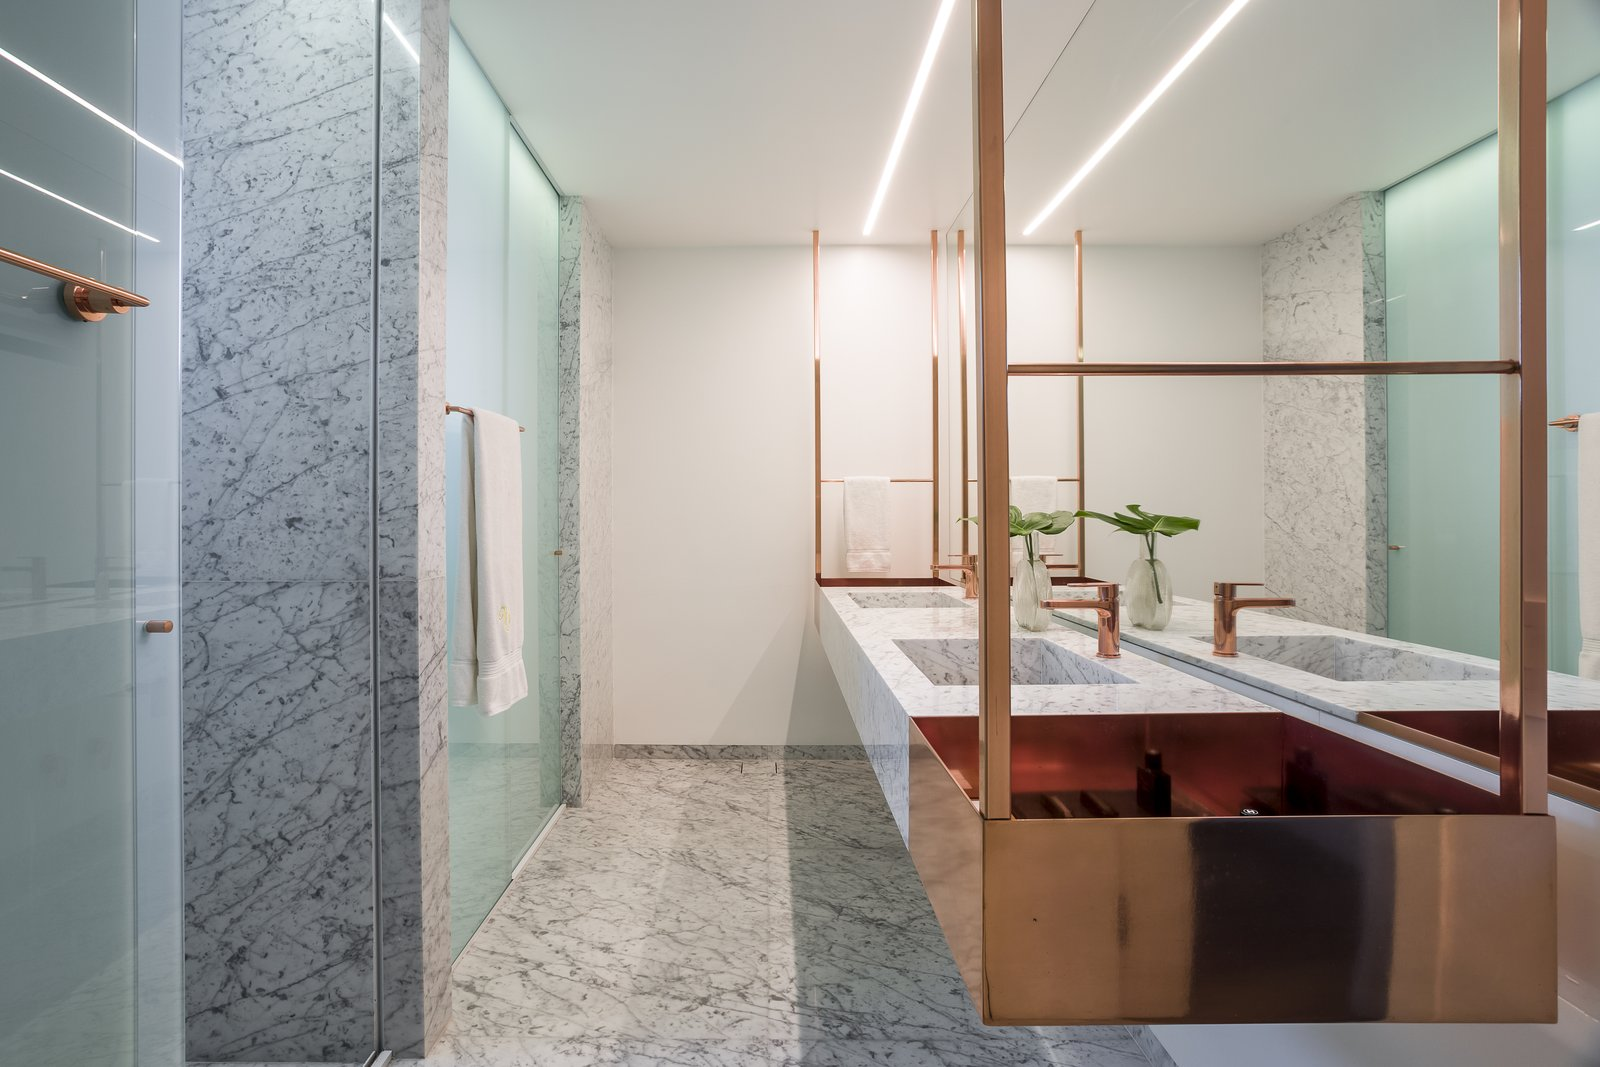 Apartment VLP master bathroom with marble finishes